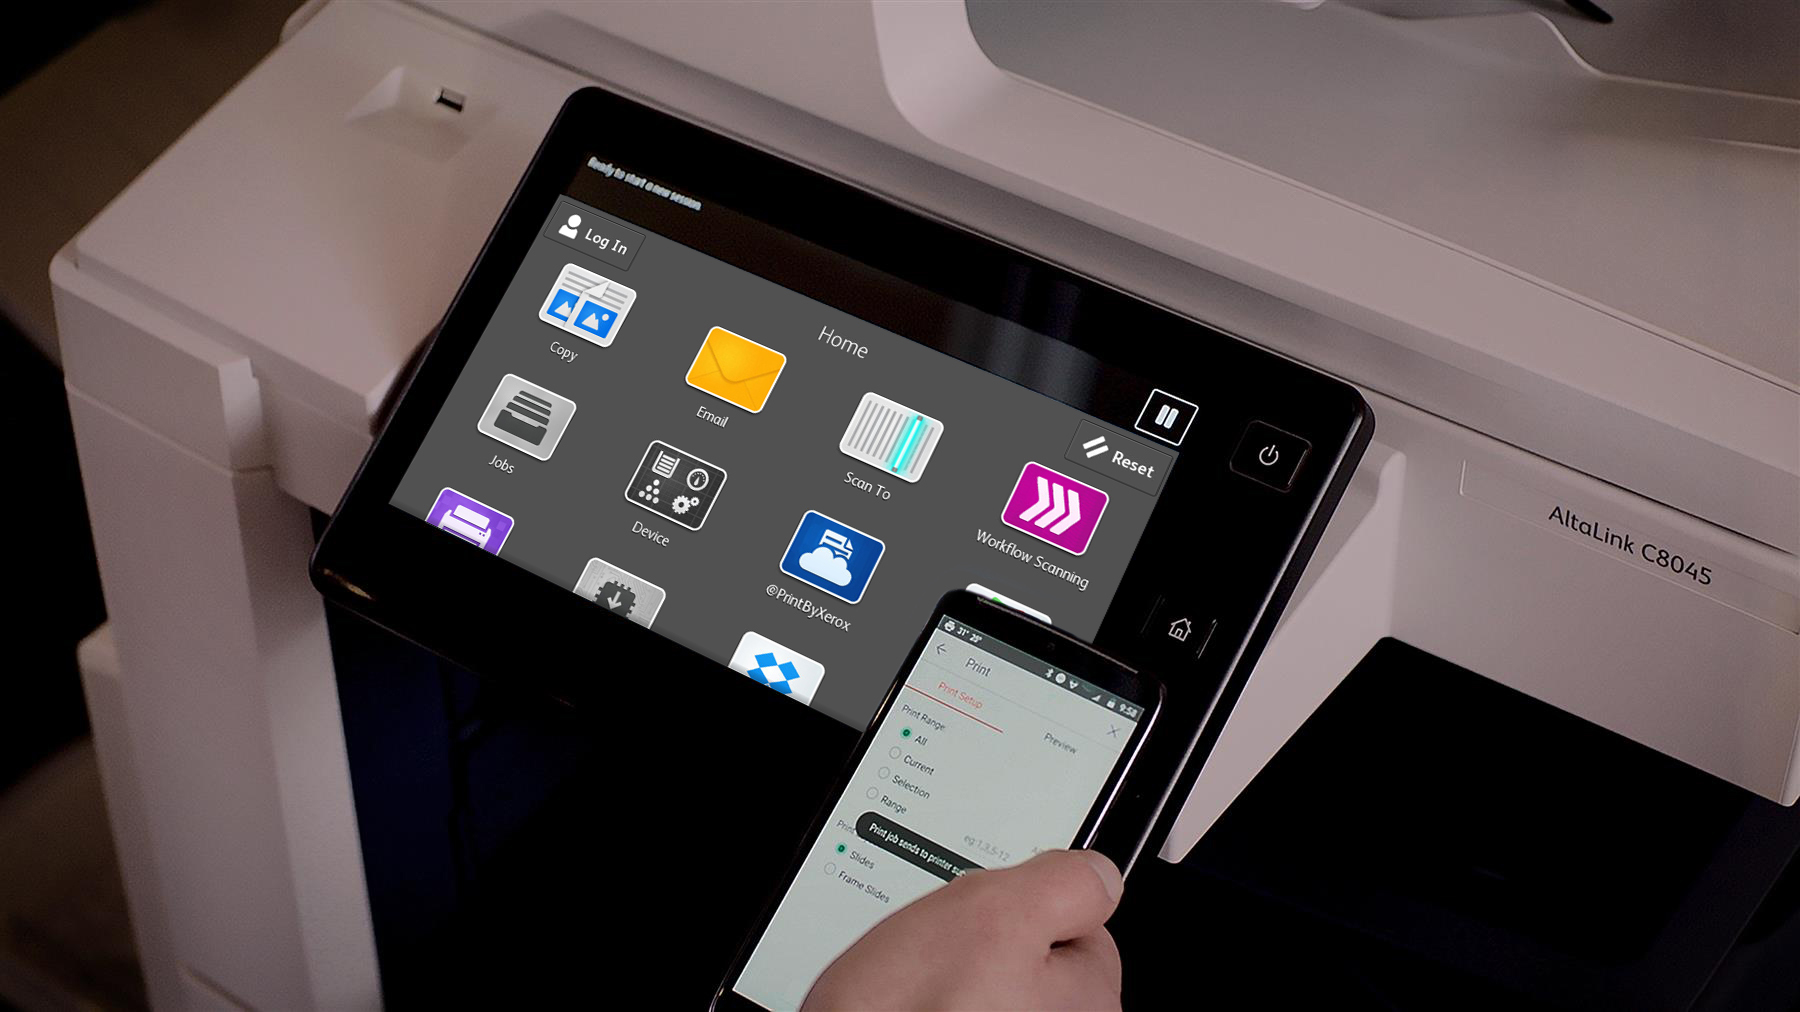 With a new tablet-like user experience, Xerox AltaLink Multifunction Printers make completing daily tasks faster and easier with a customizable home screen.